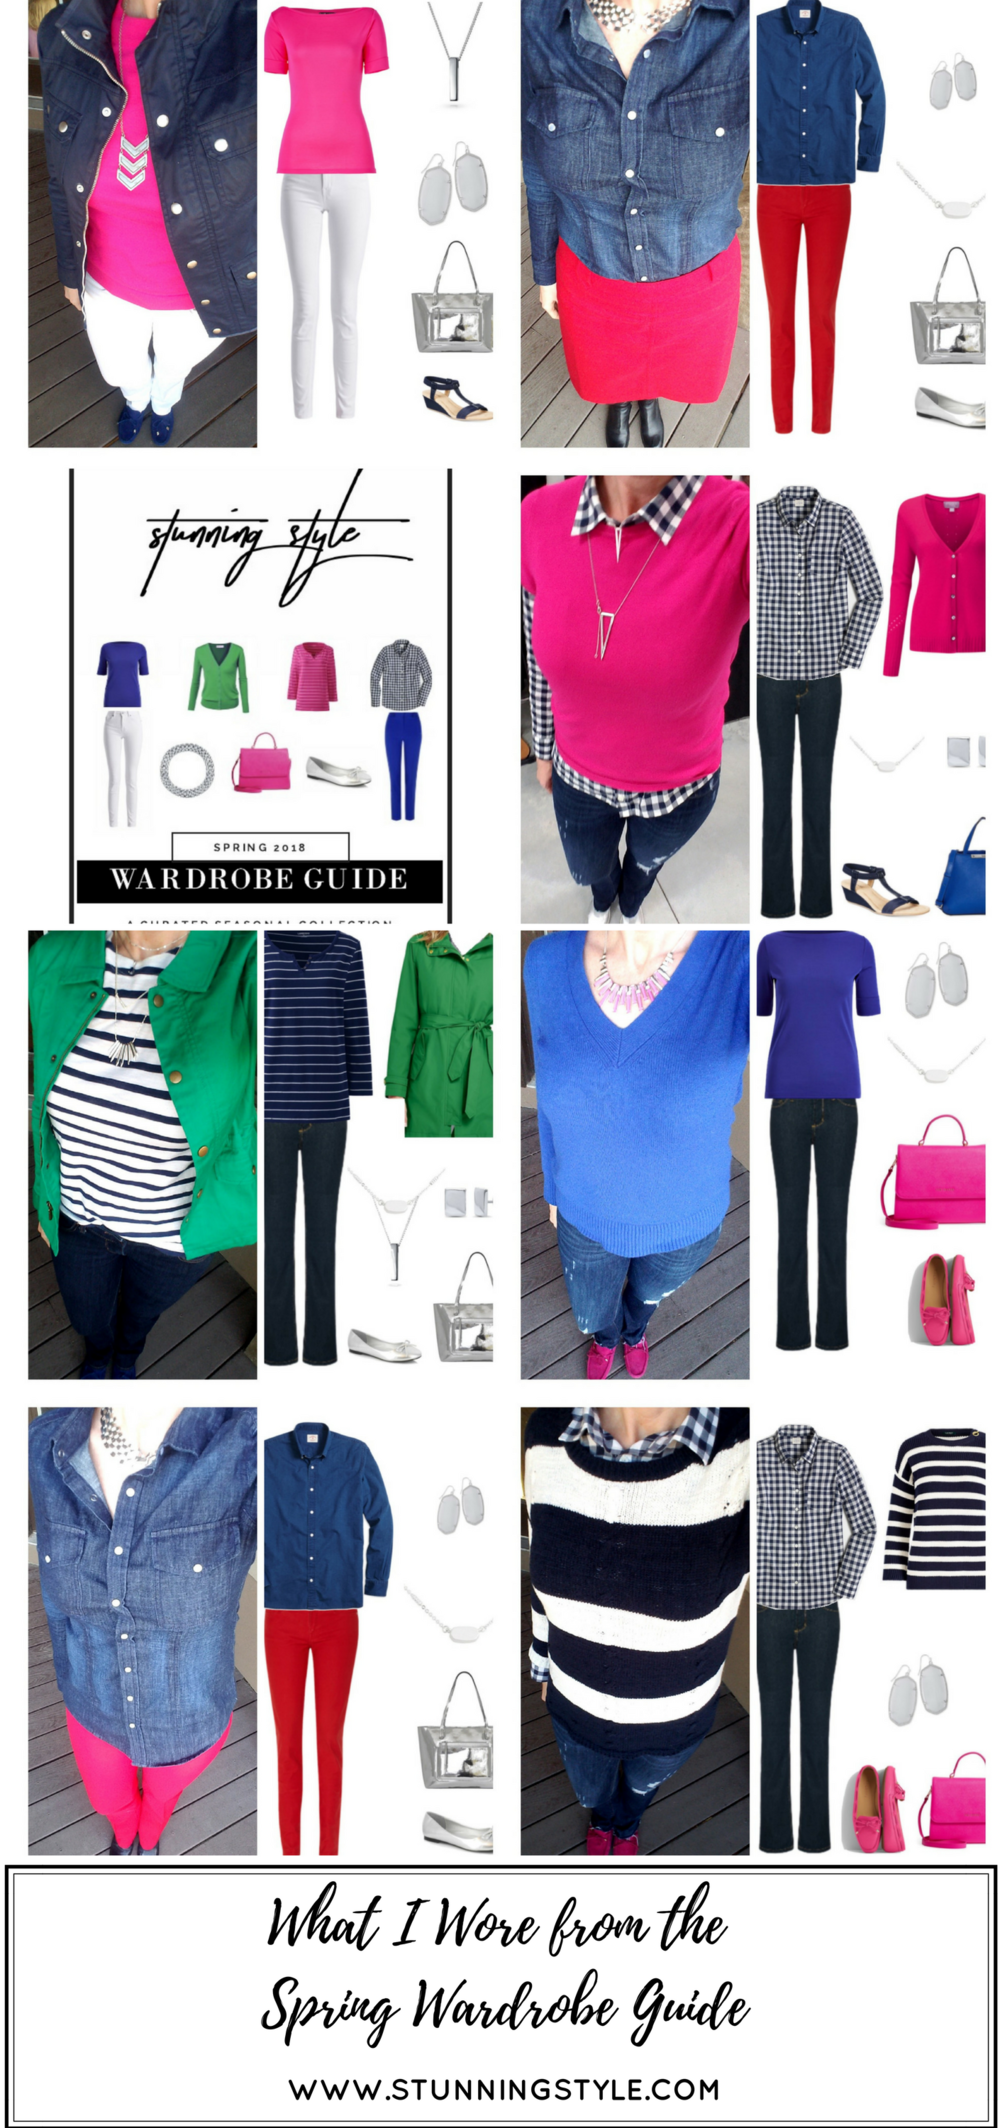 Stunning Style. Bold everyday style from a busy stay-at-home mom of 6 kids, spring style. Bold colors, bold lips, classic and edgy style outfits. Dressing Your Truth Type 4 DYT T4 T4/3. Spring outfits.